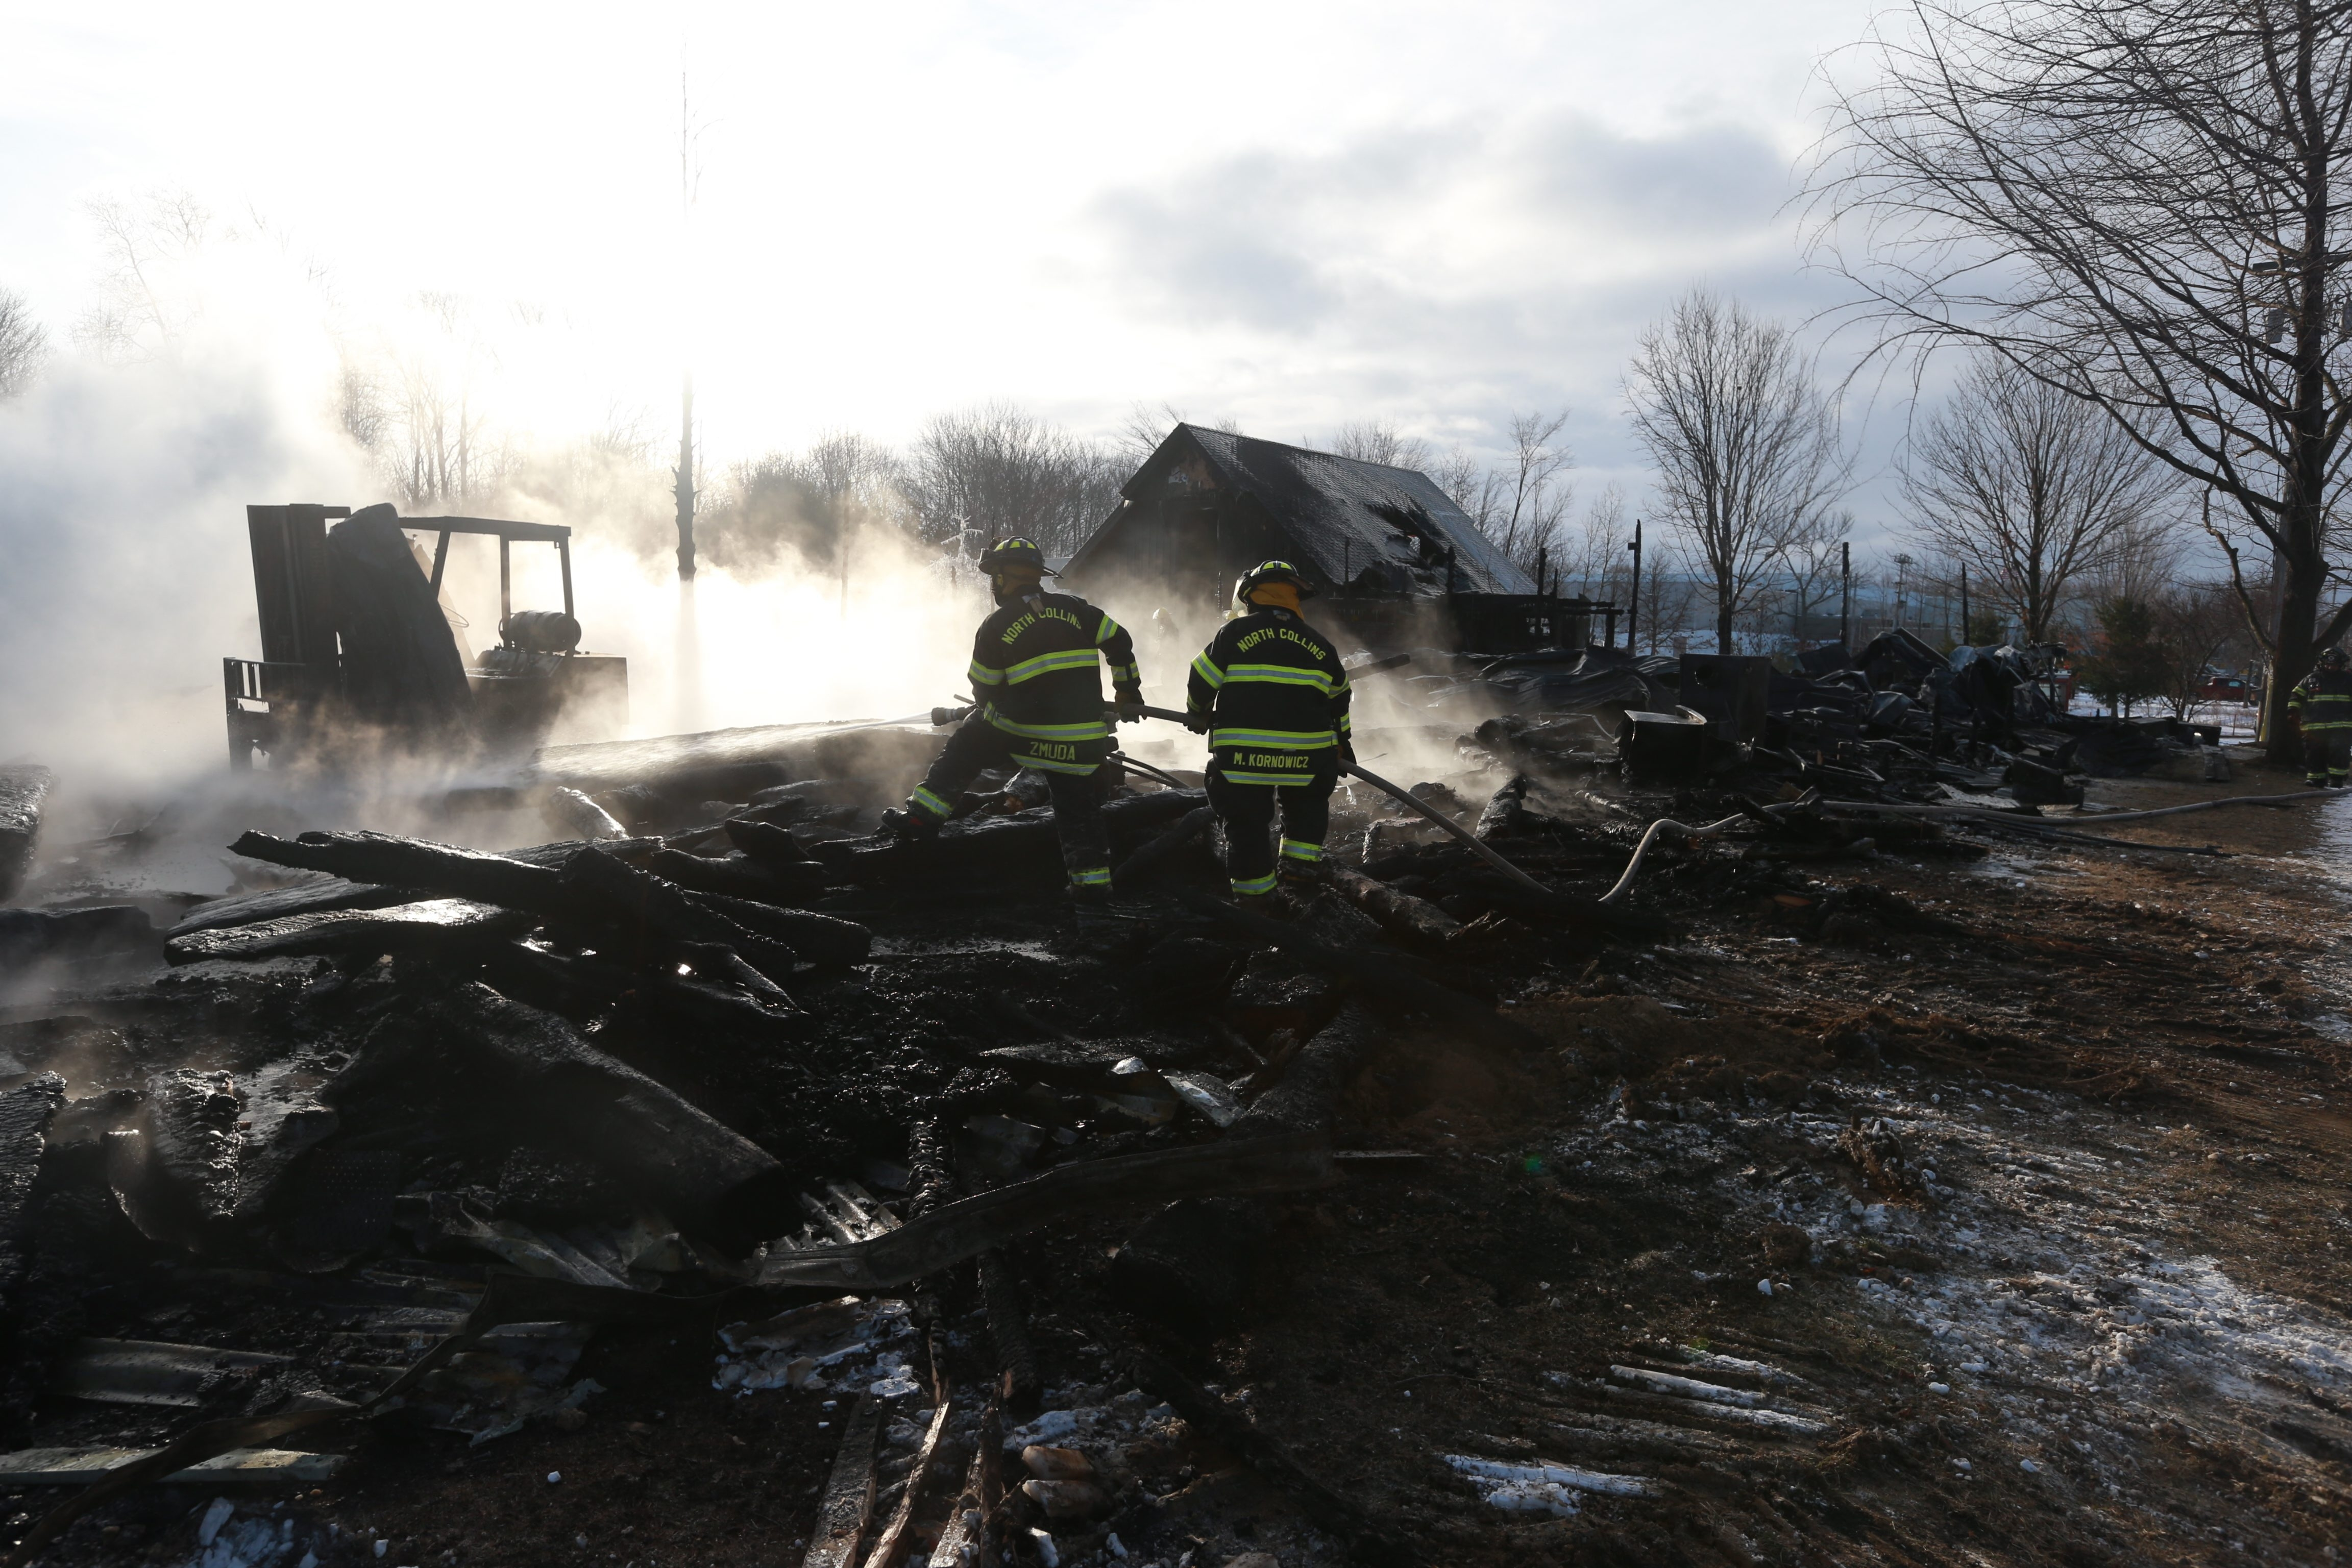 North Collins firefighters extinguish the remains of a three-alarm blaze at the Timberbuilt shop in North Collins on  Thursday,  Feb. 11, 2016.   (John Hickey/Buffalo News)